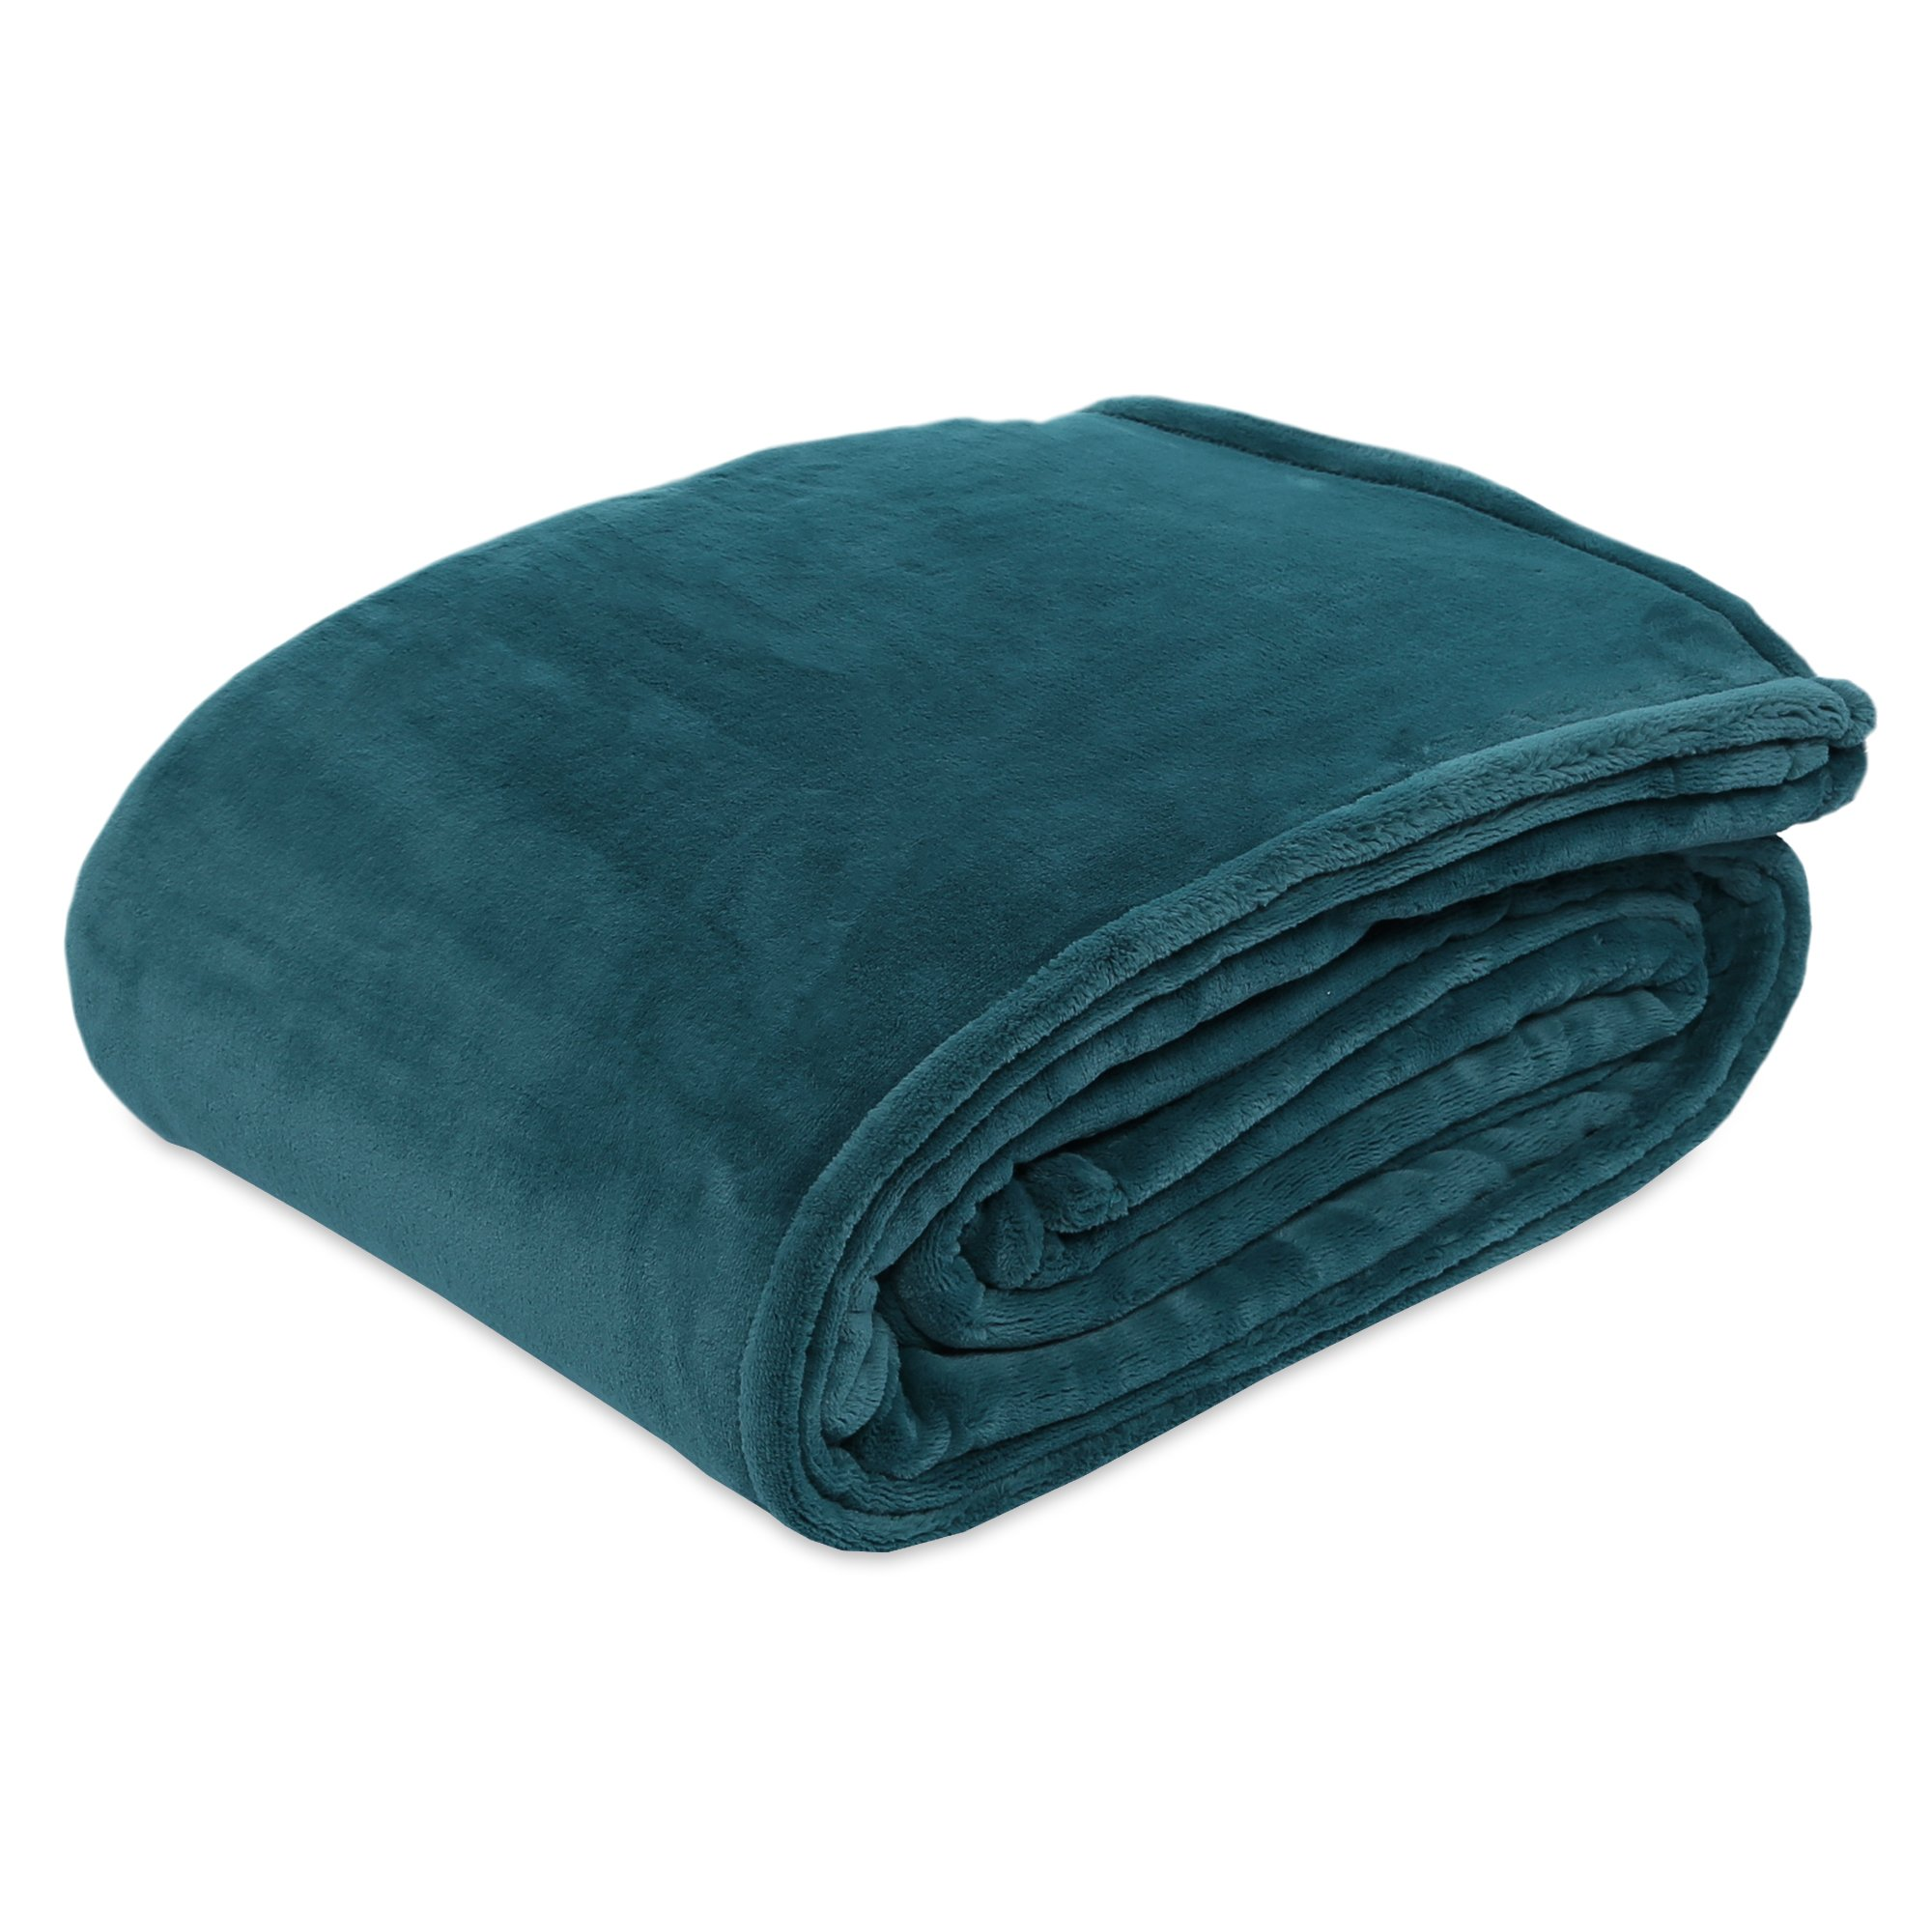 Berkshire Blanket Primalush Bed Blanket, Twin, Atlantic Blue